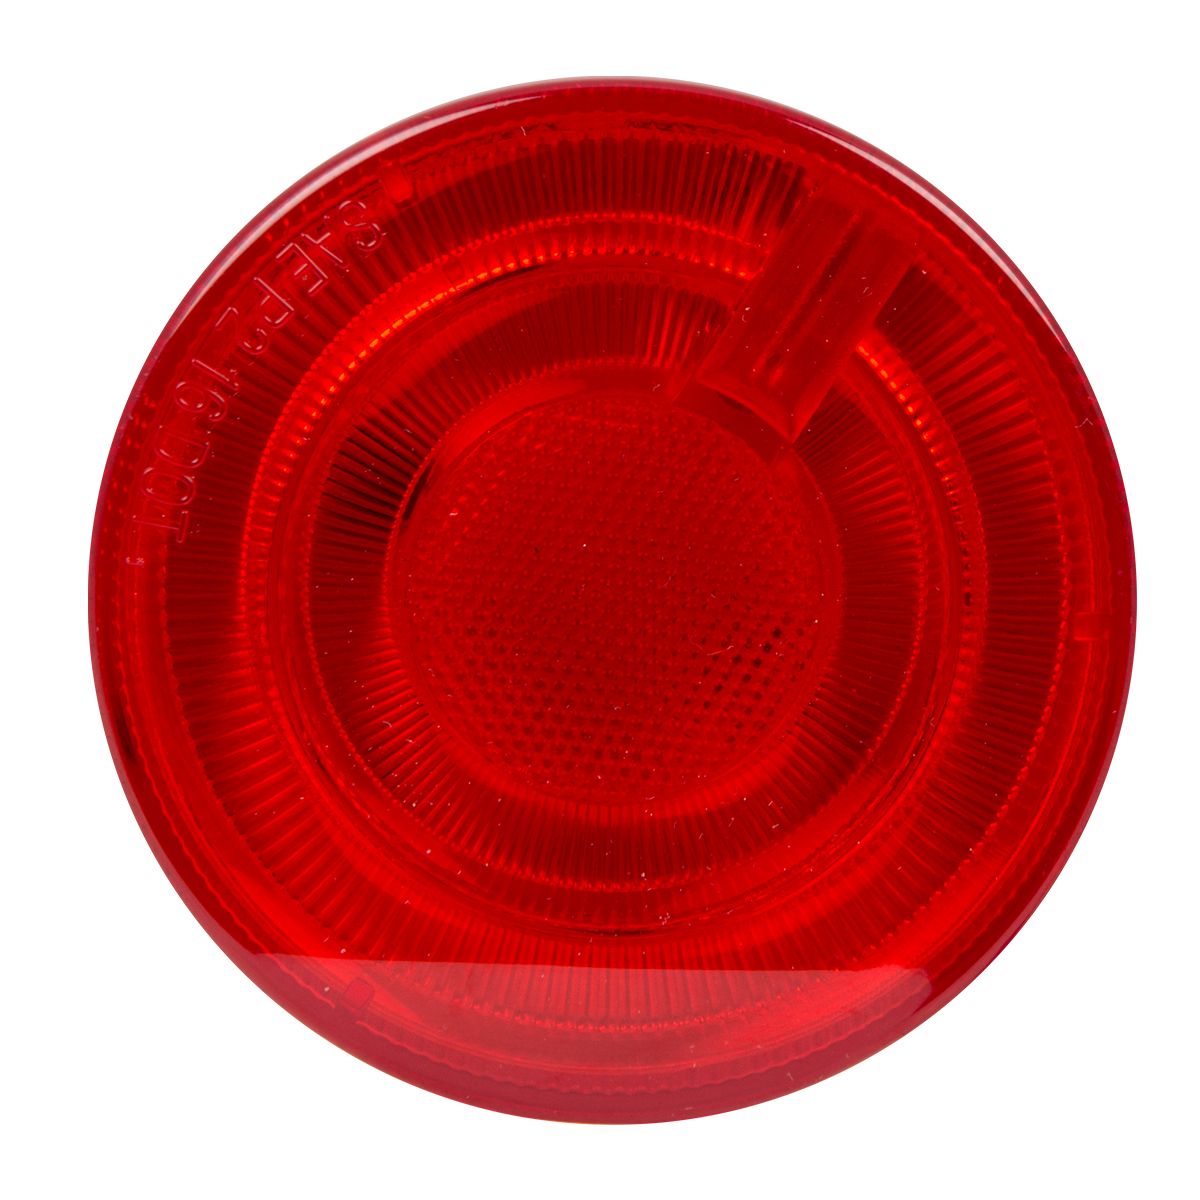 "75942 2-1/2"" Prime LED Marker Light"